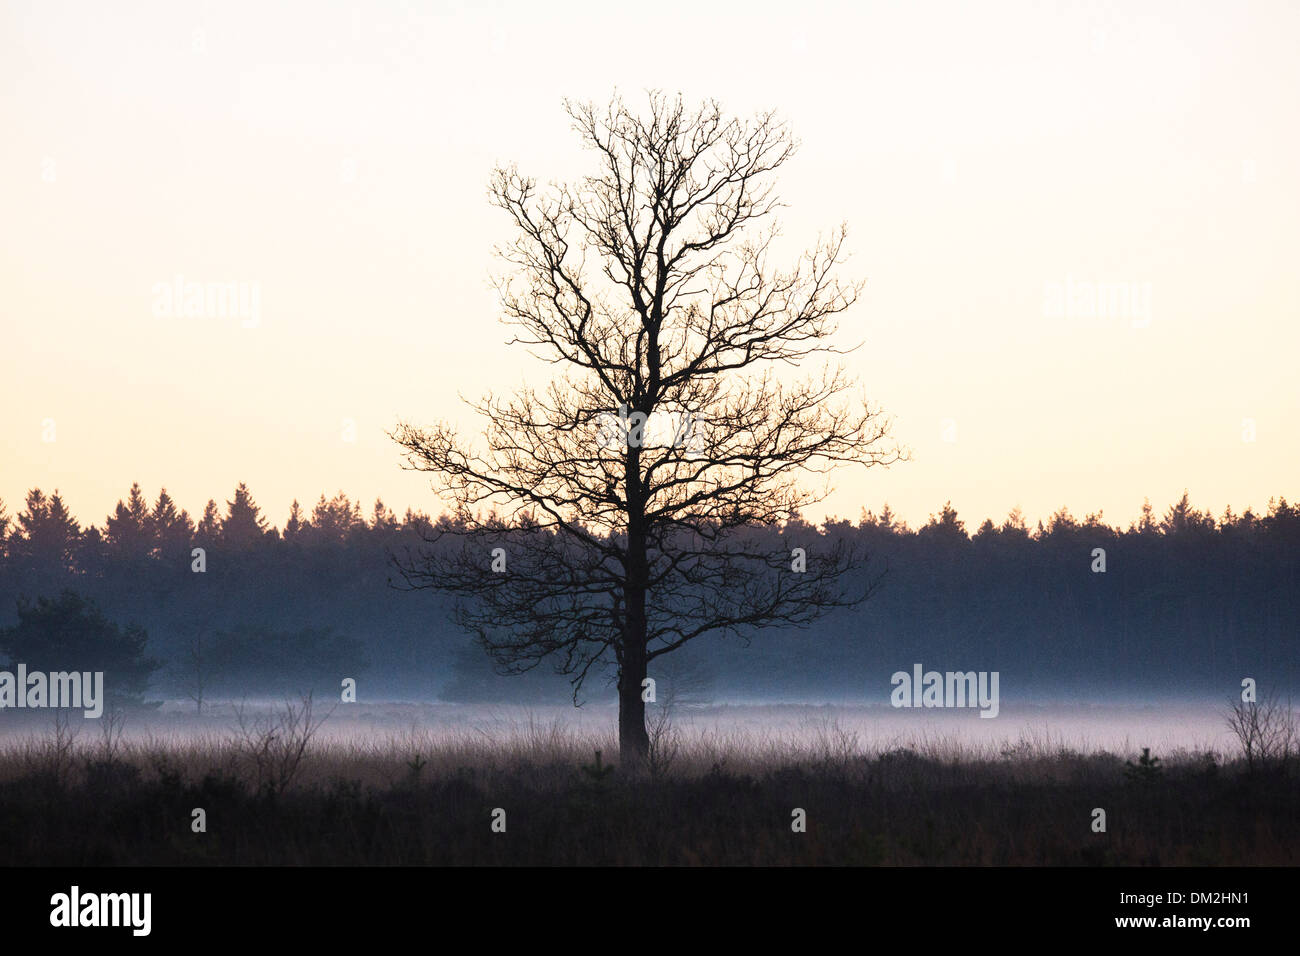 Landscape with low hanging mist at 'de Malpie' in North Brabant in the Netherlands - Stock Image